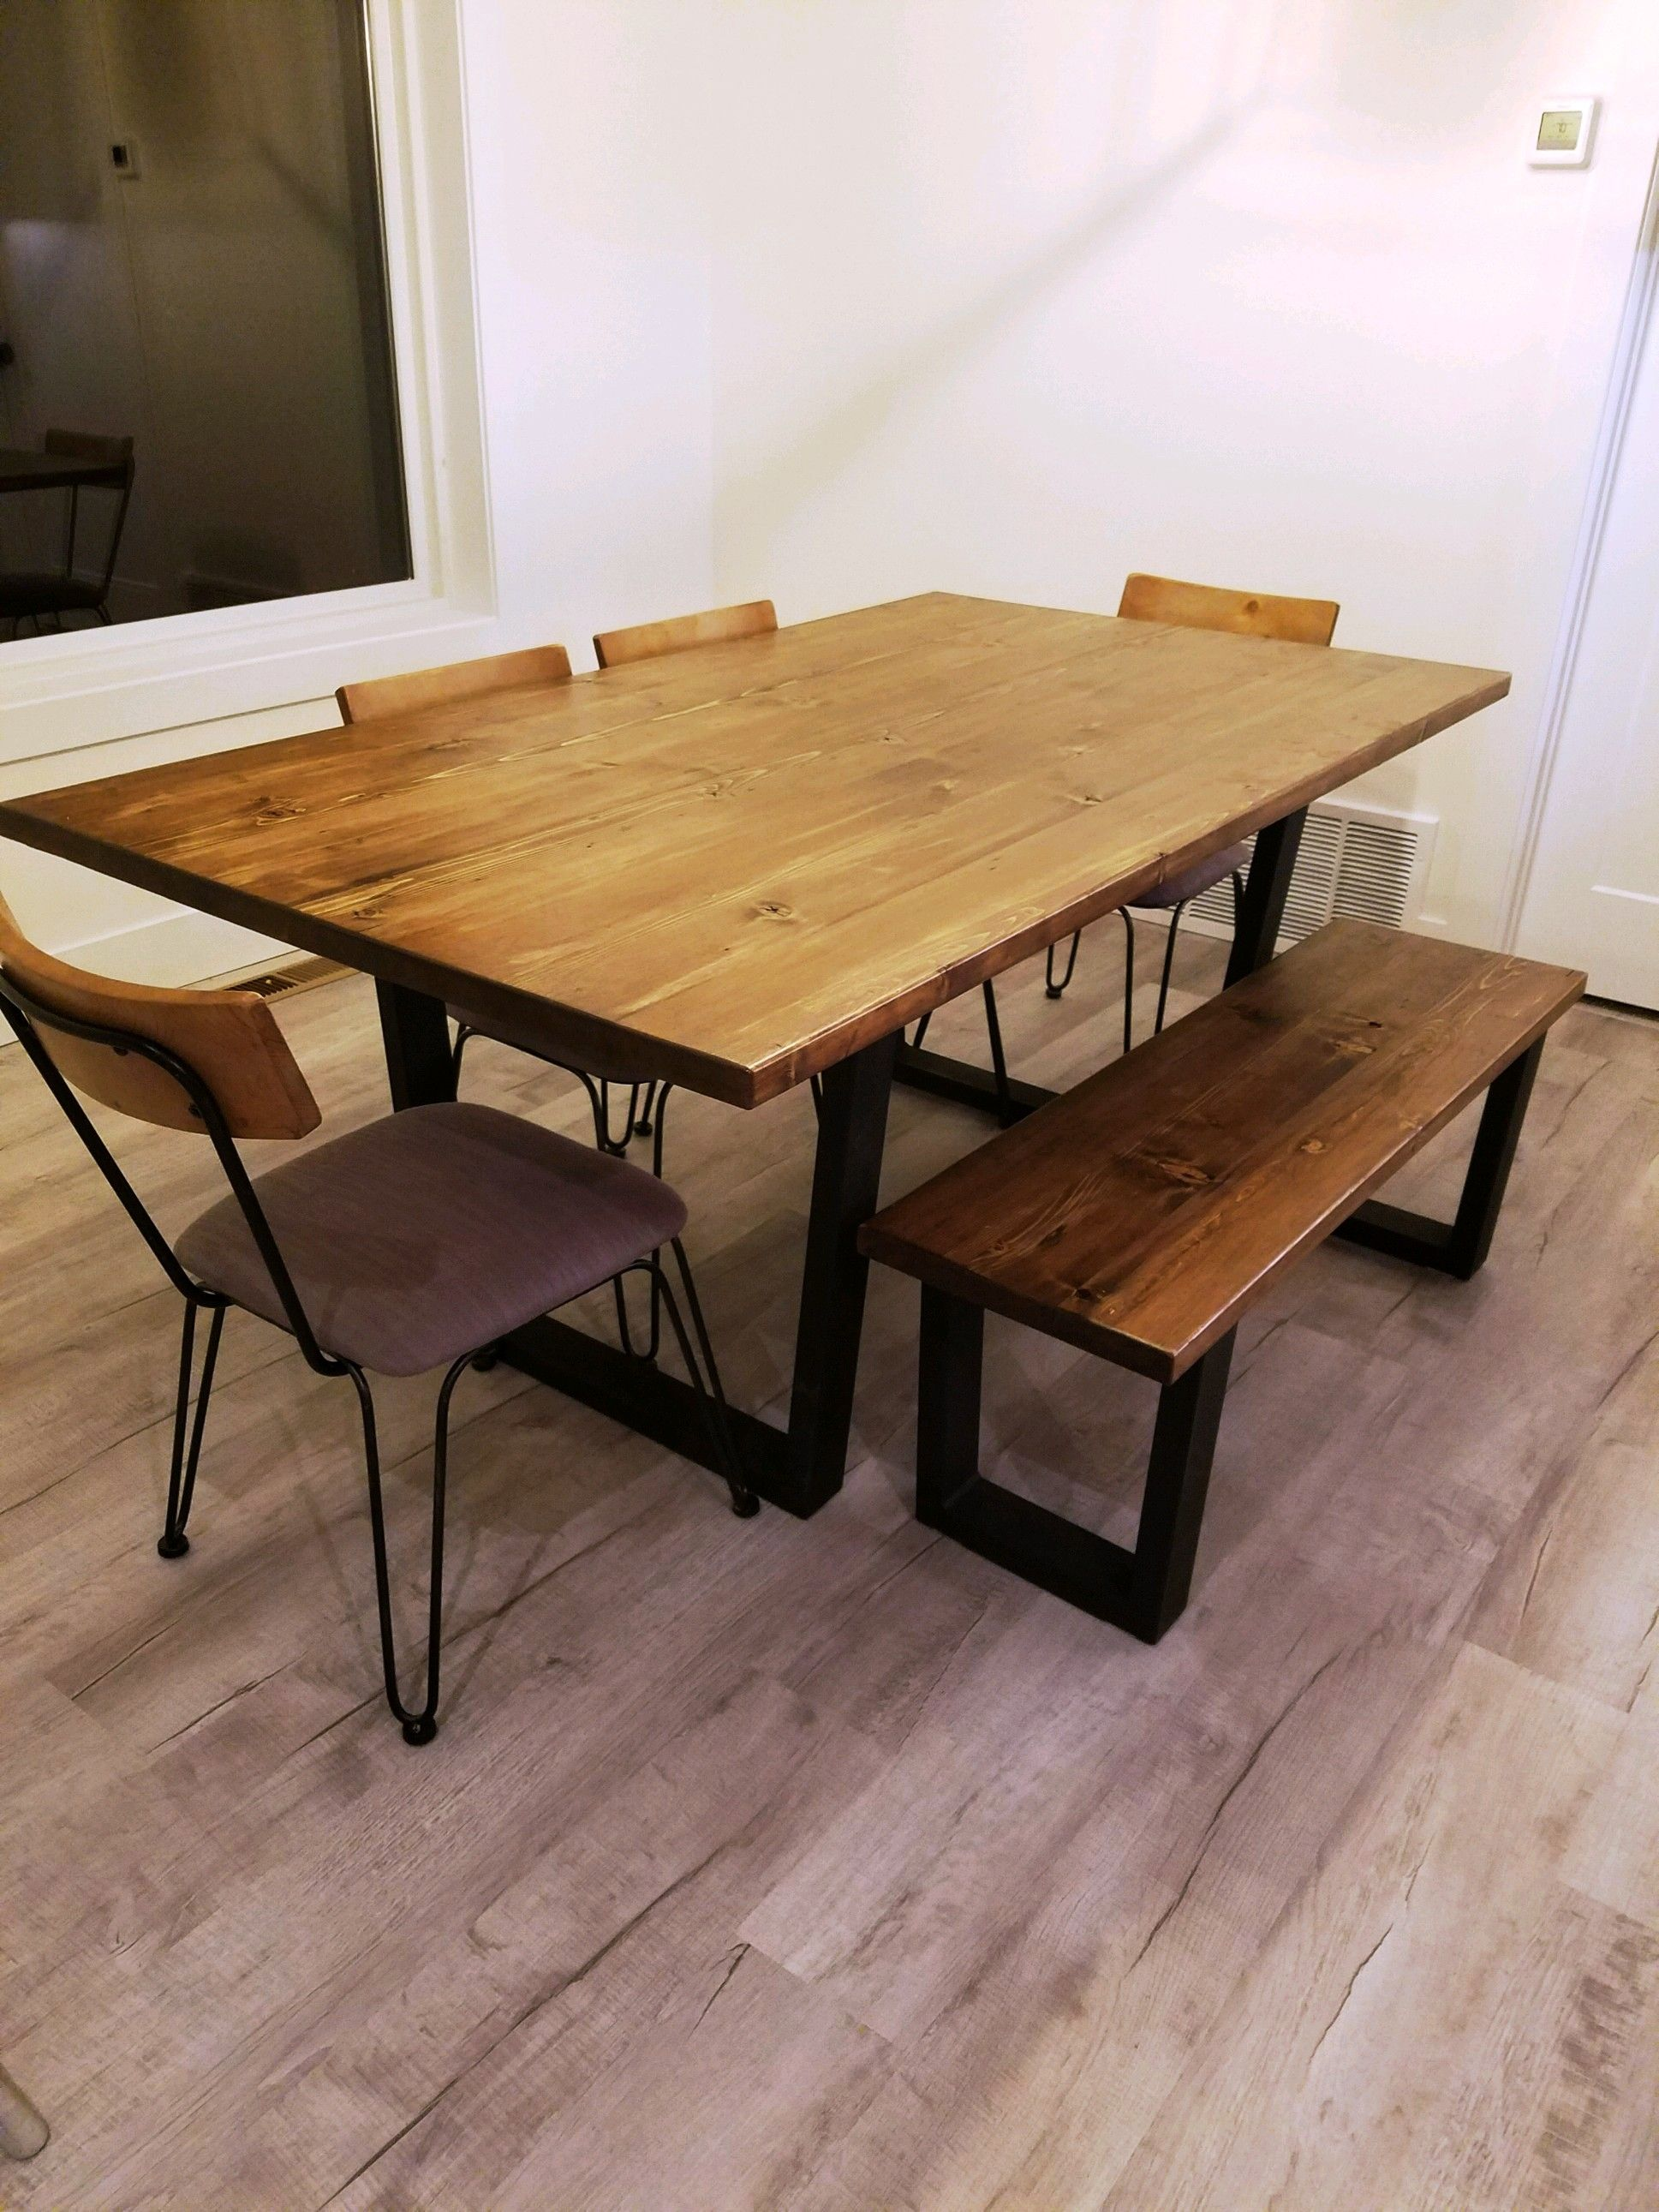 Buy Handmade Modern Industrial Minimalist Style Dining Table